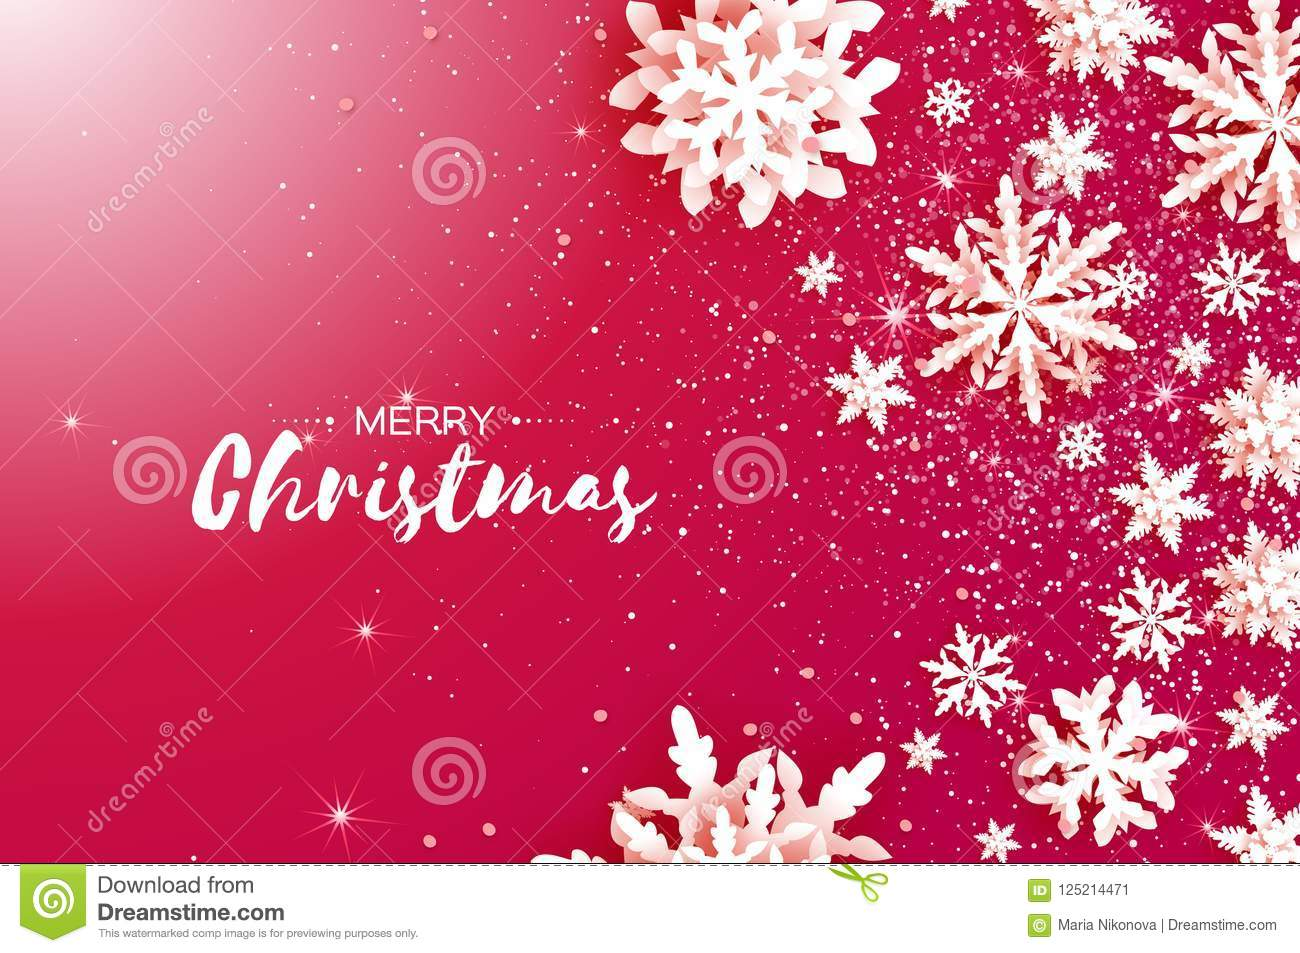 Merry Christmas And Happy New Year Greetings Card White Paper Cut